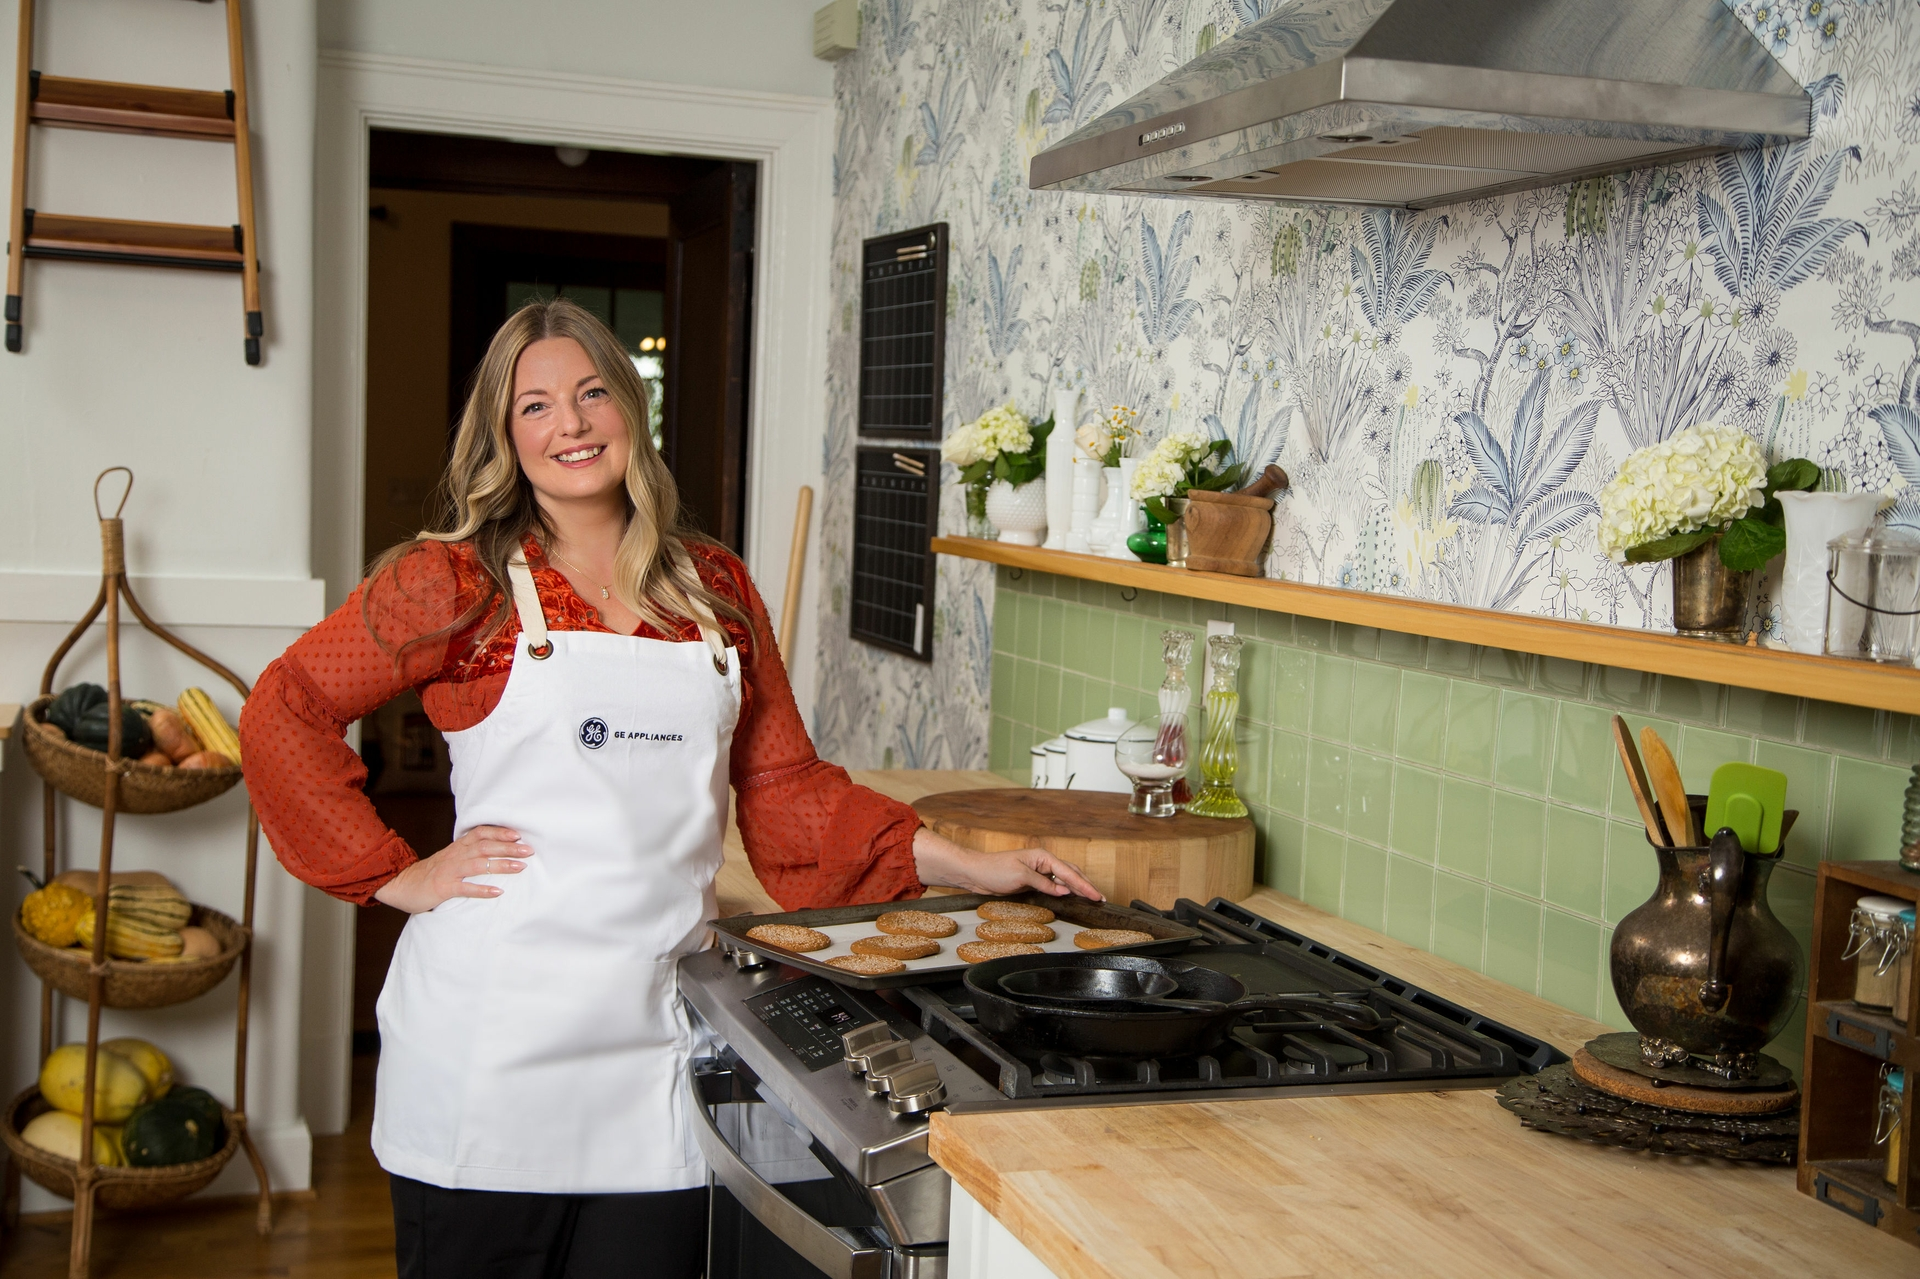 Damaris Phillips will also support the brand at various industry and community events including events in her hometown of Louisville, Ky. where GE Appliances is headquartered.